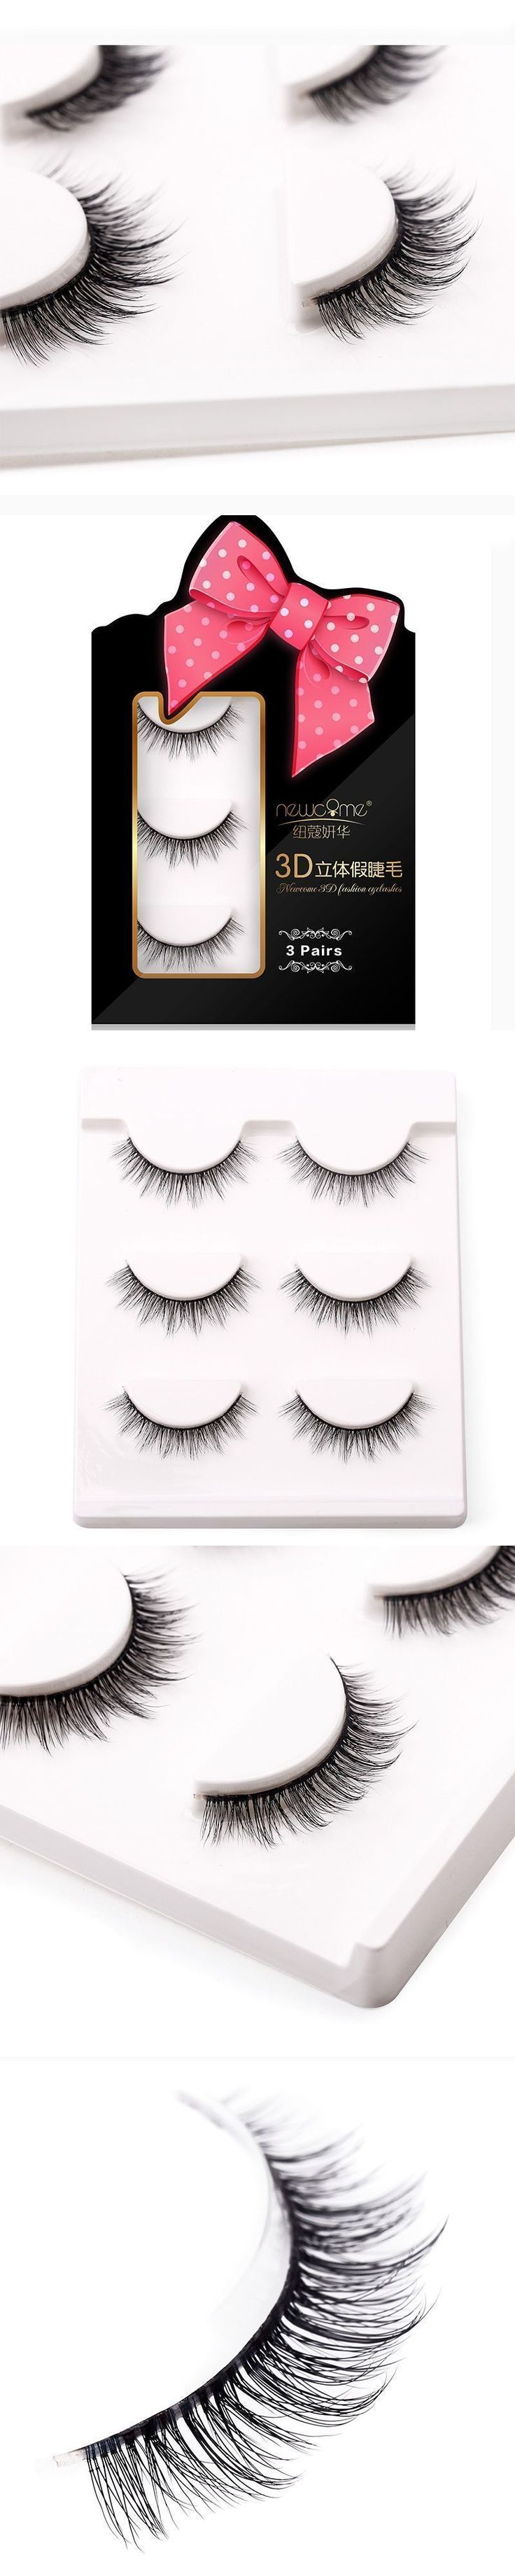 cheap fake makeup best 25 eyelash extensions ideas on pinterest eyelash 1858